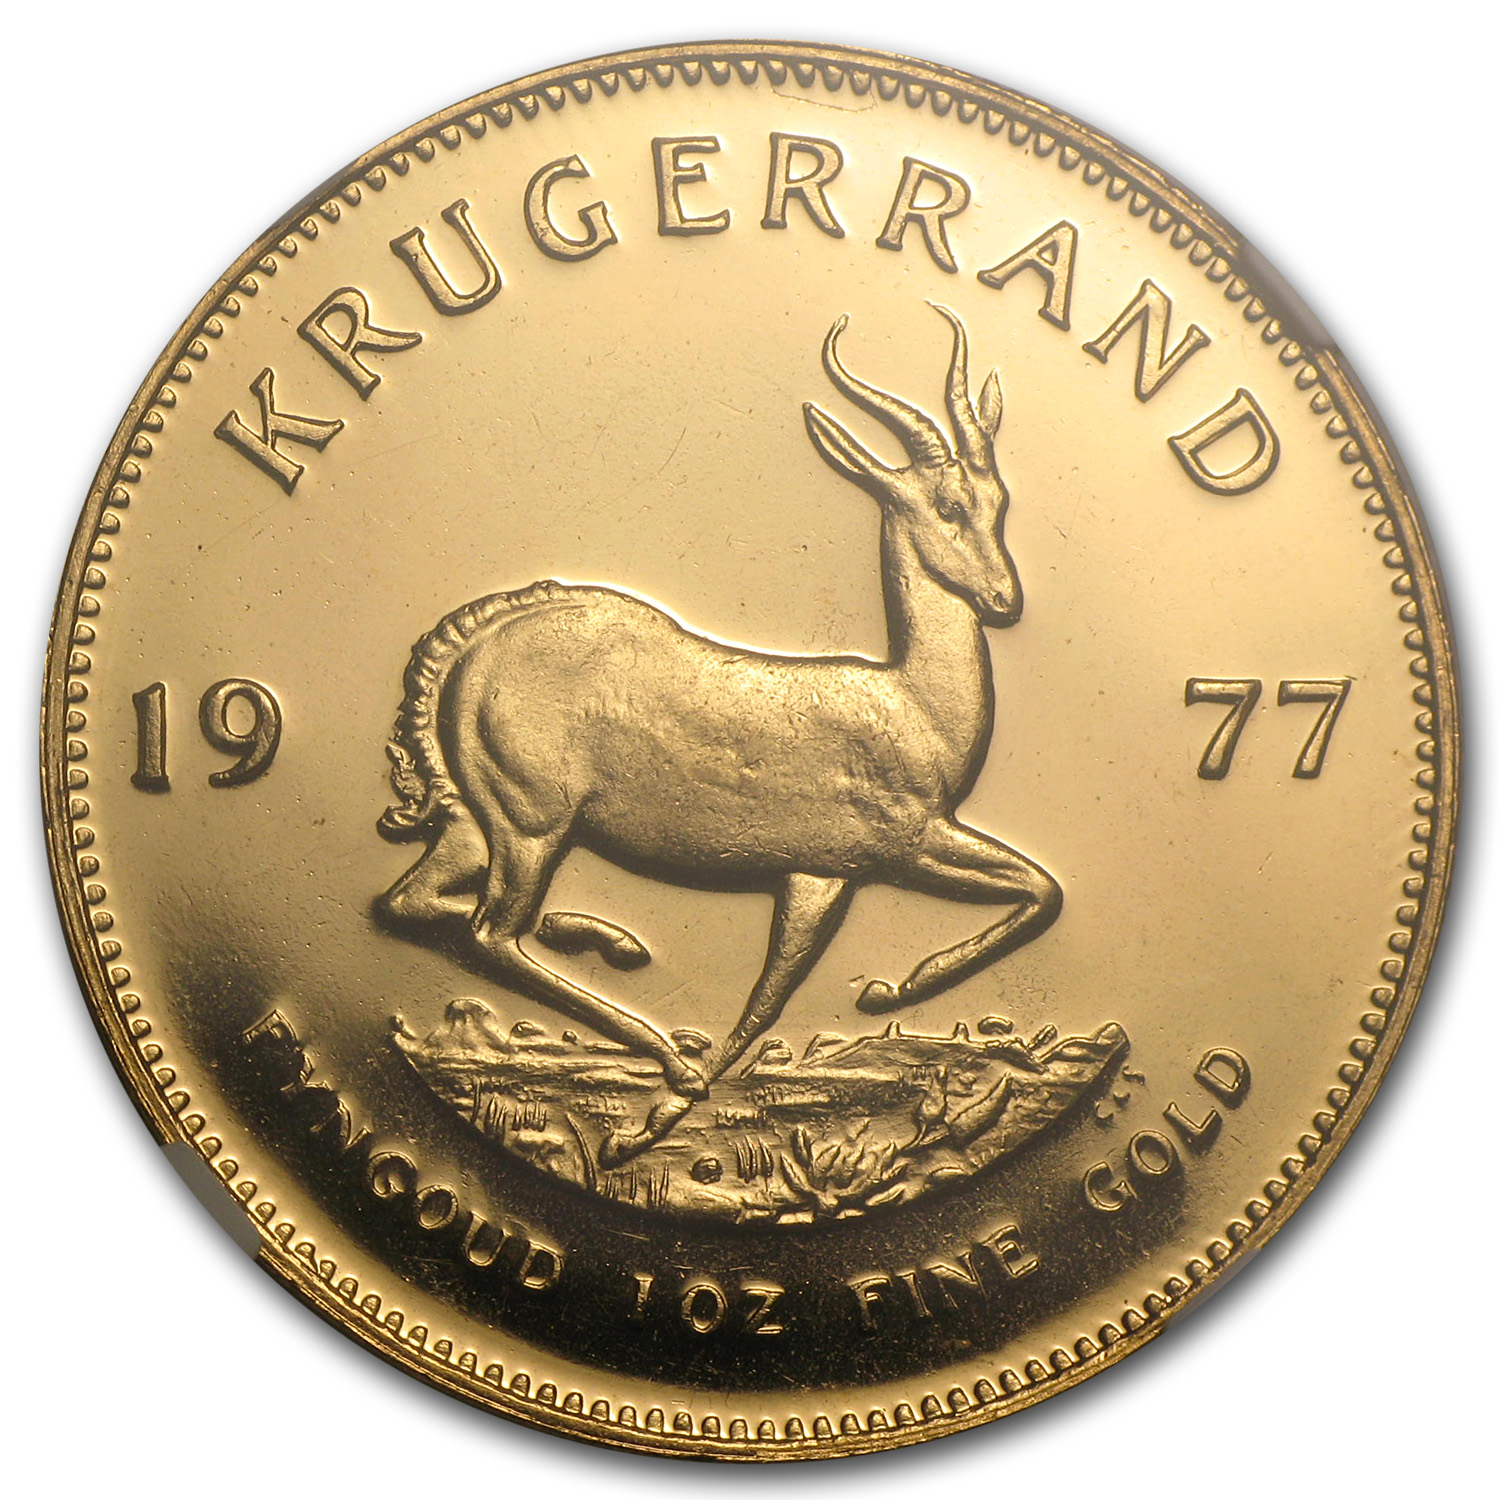 1977 South Africa 1 oz Gold Krugerrand PF-65 NGC